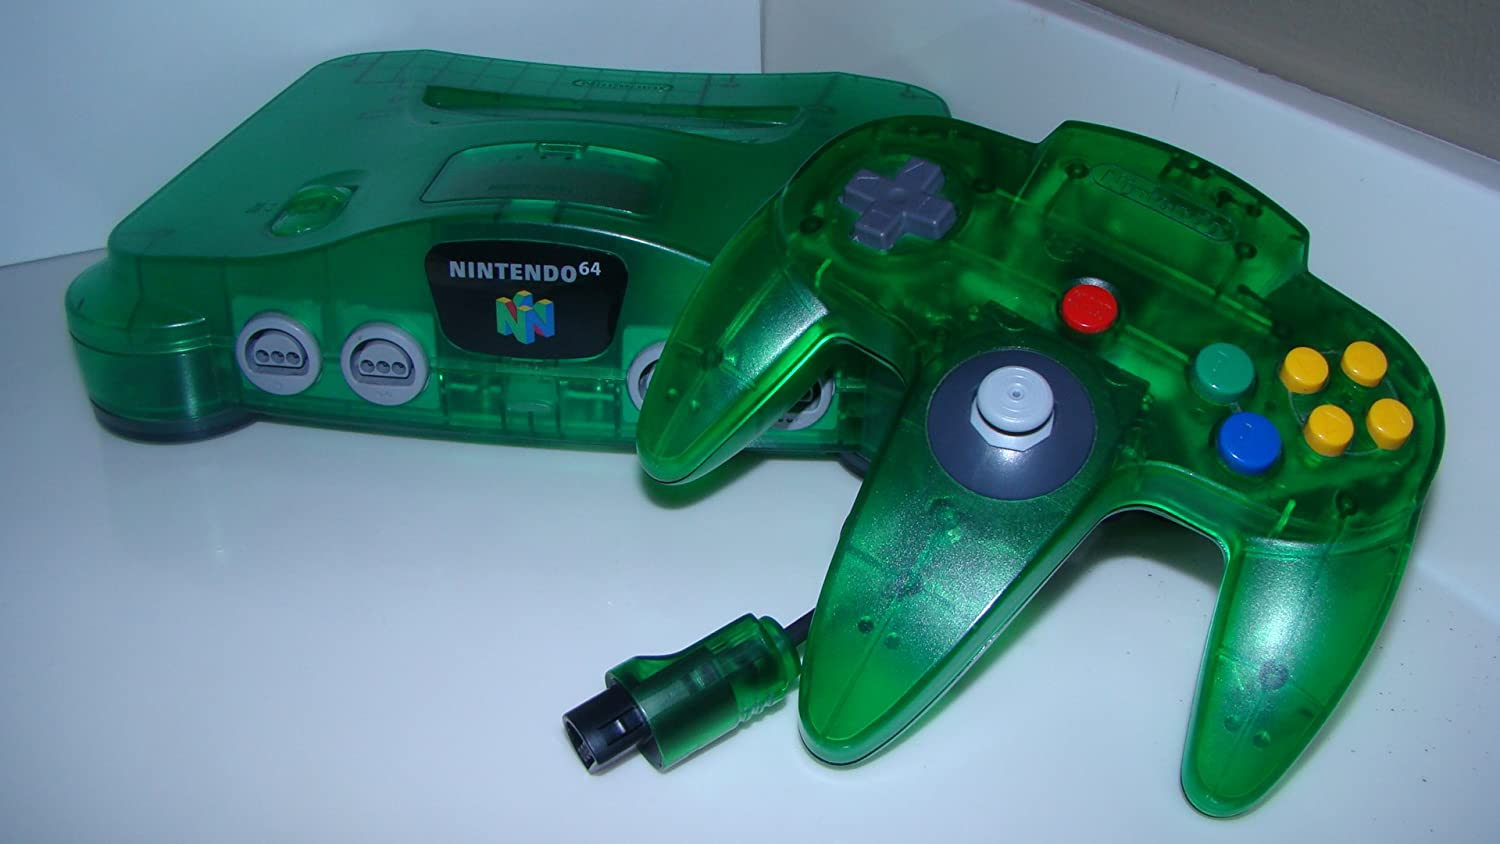 Switch Pro Controllers got that N64 style coloring going ...